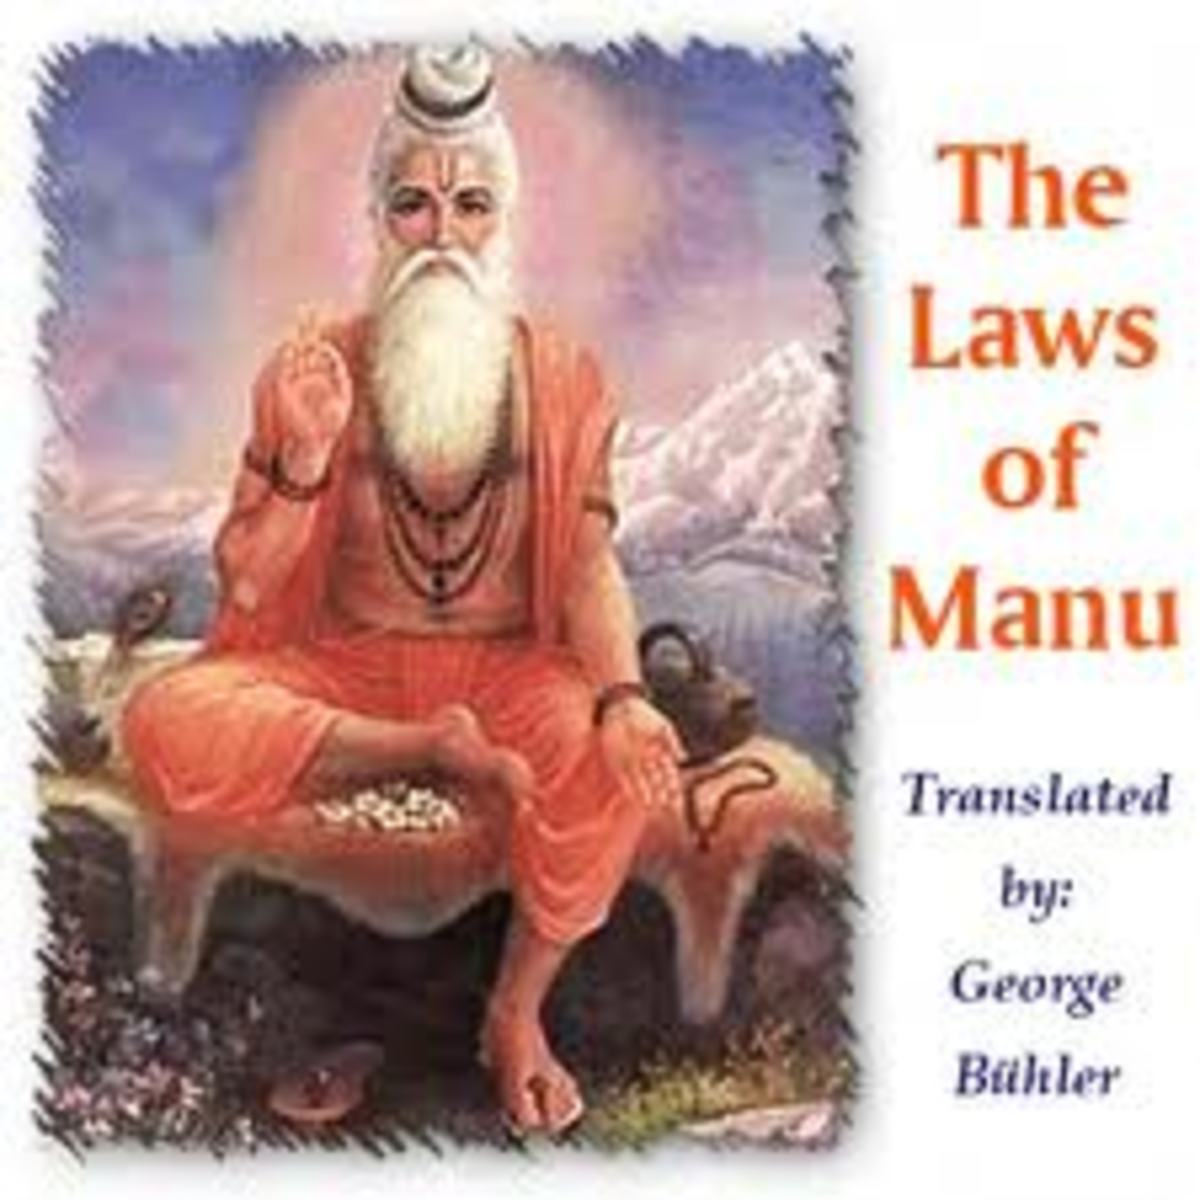 It is believed that the oldest religion is Hinduism, it is a very complex religion for us to understand. However it is a very large religion, several other religions derive from it. The Laws of Manu is the book to read to understand this religion.